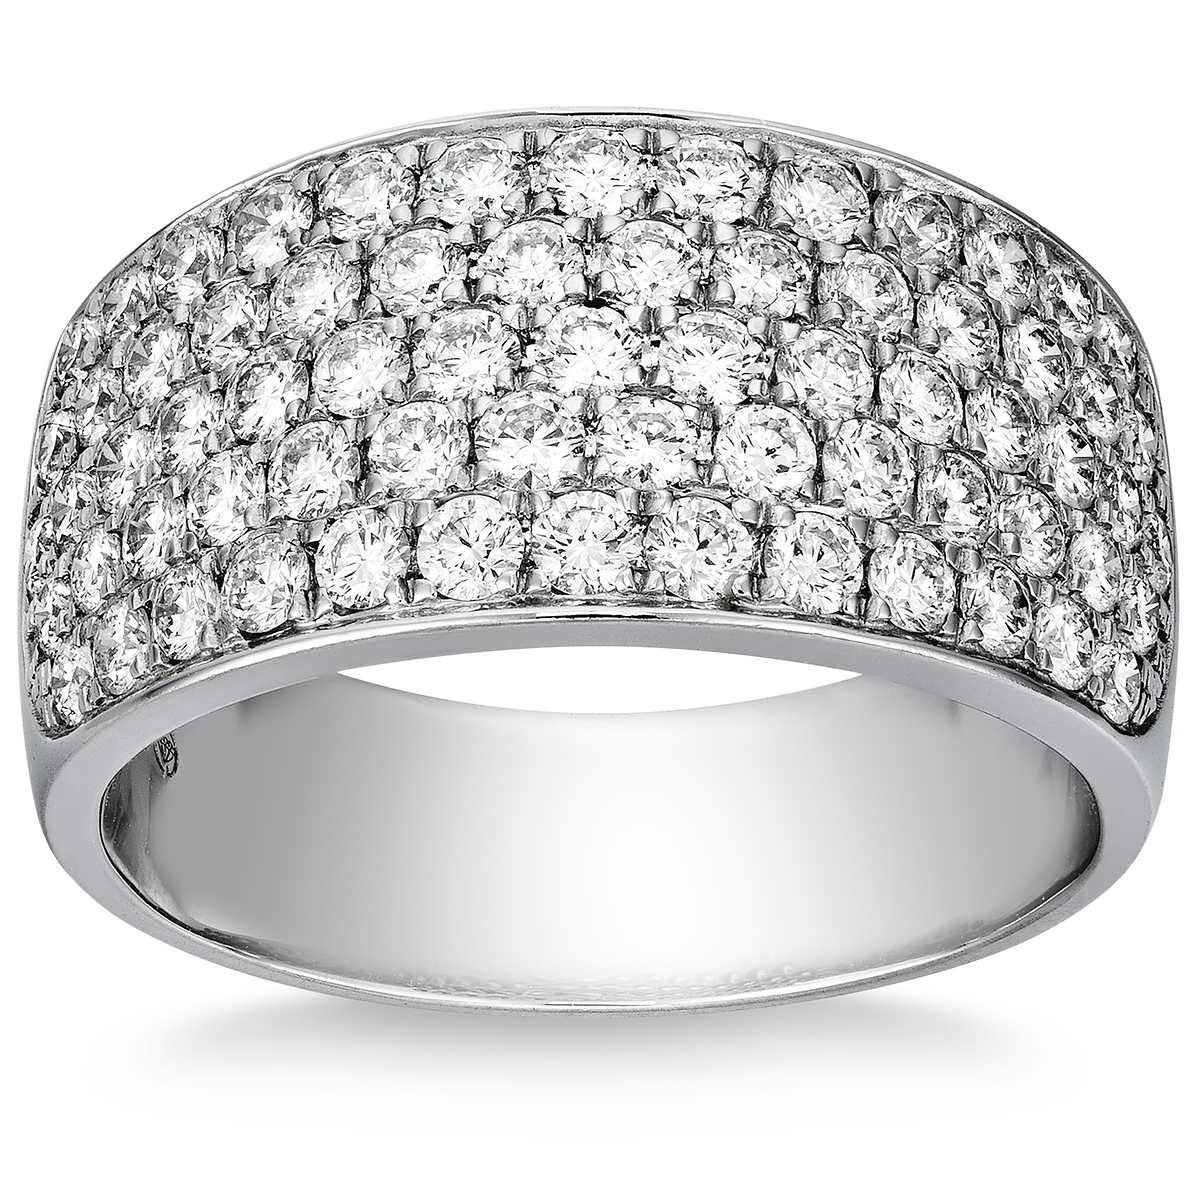 b7364be6057ba Round Brilliant 1.47 ctw VS2 Clarity, I Color Diamond 14kt White Gold Pave  Band